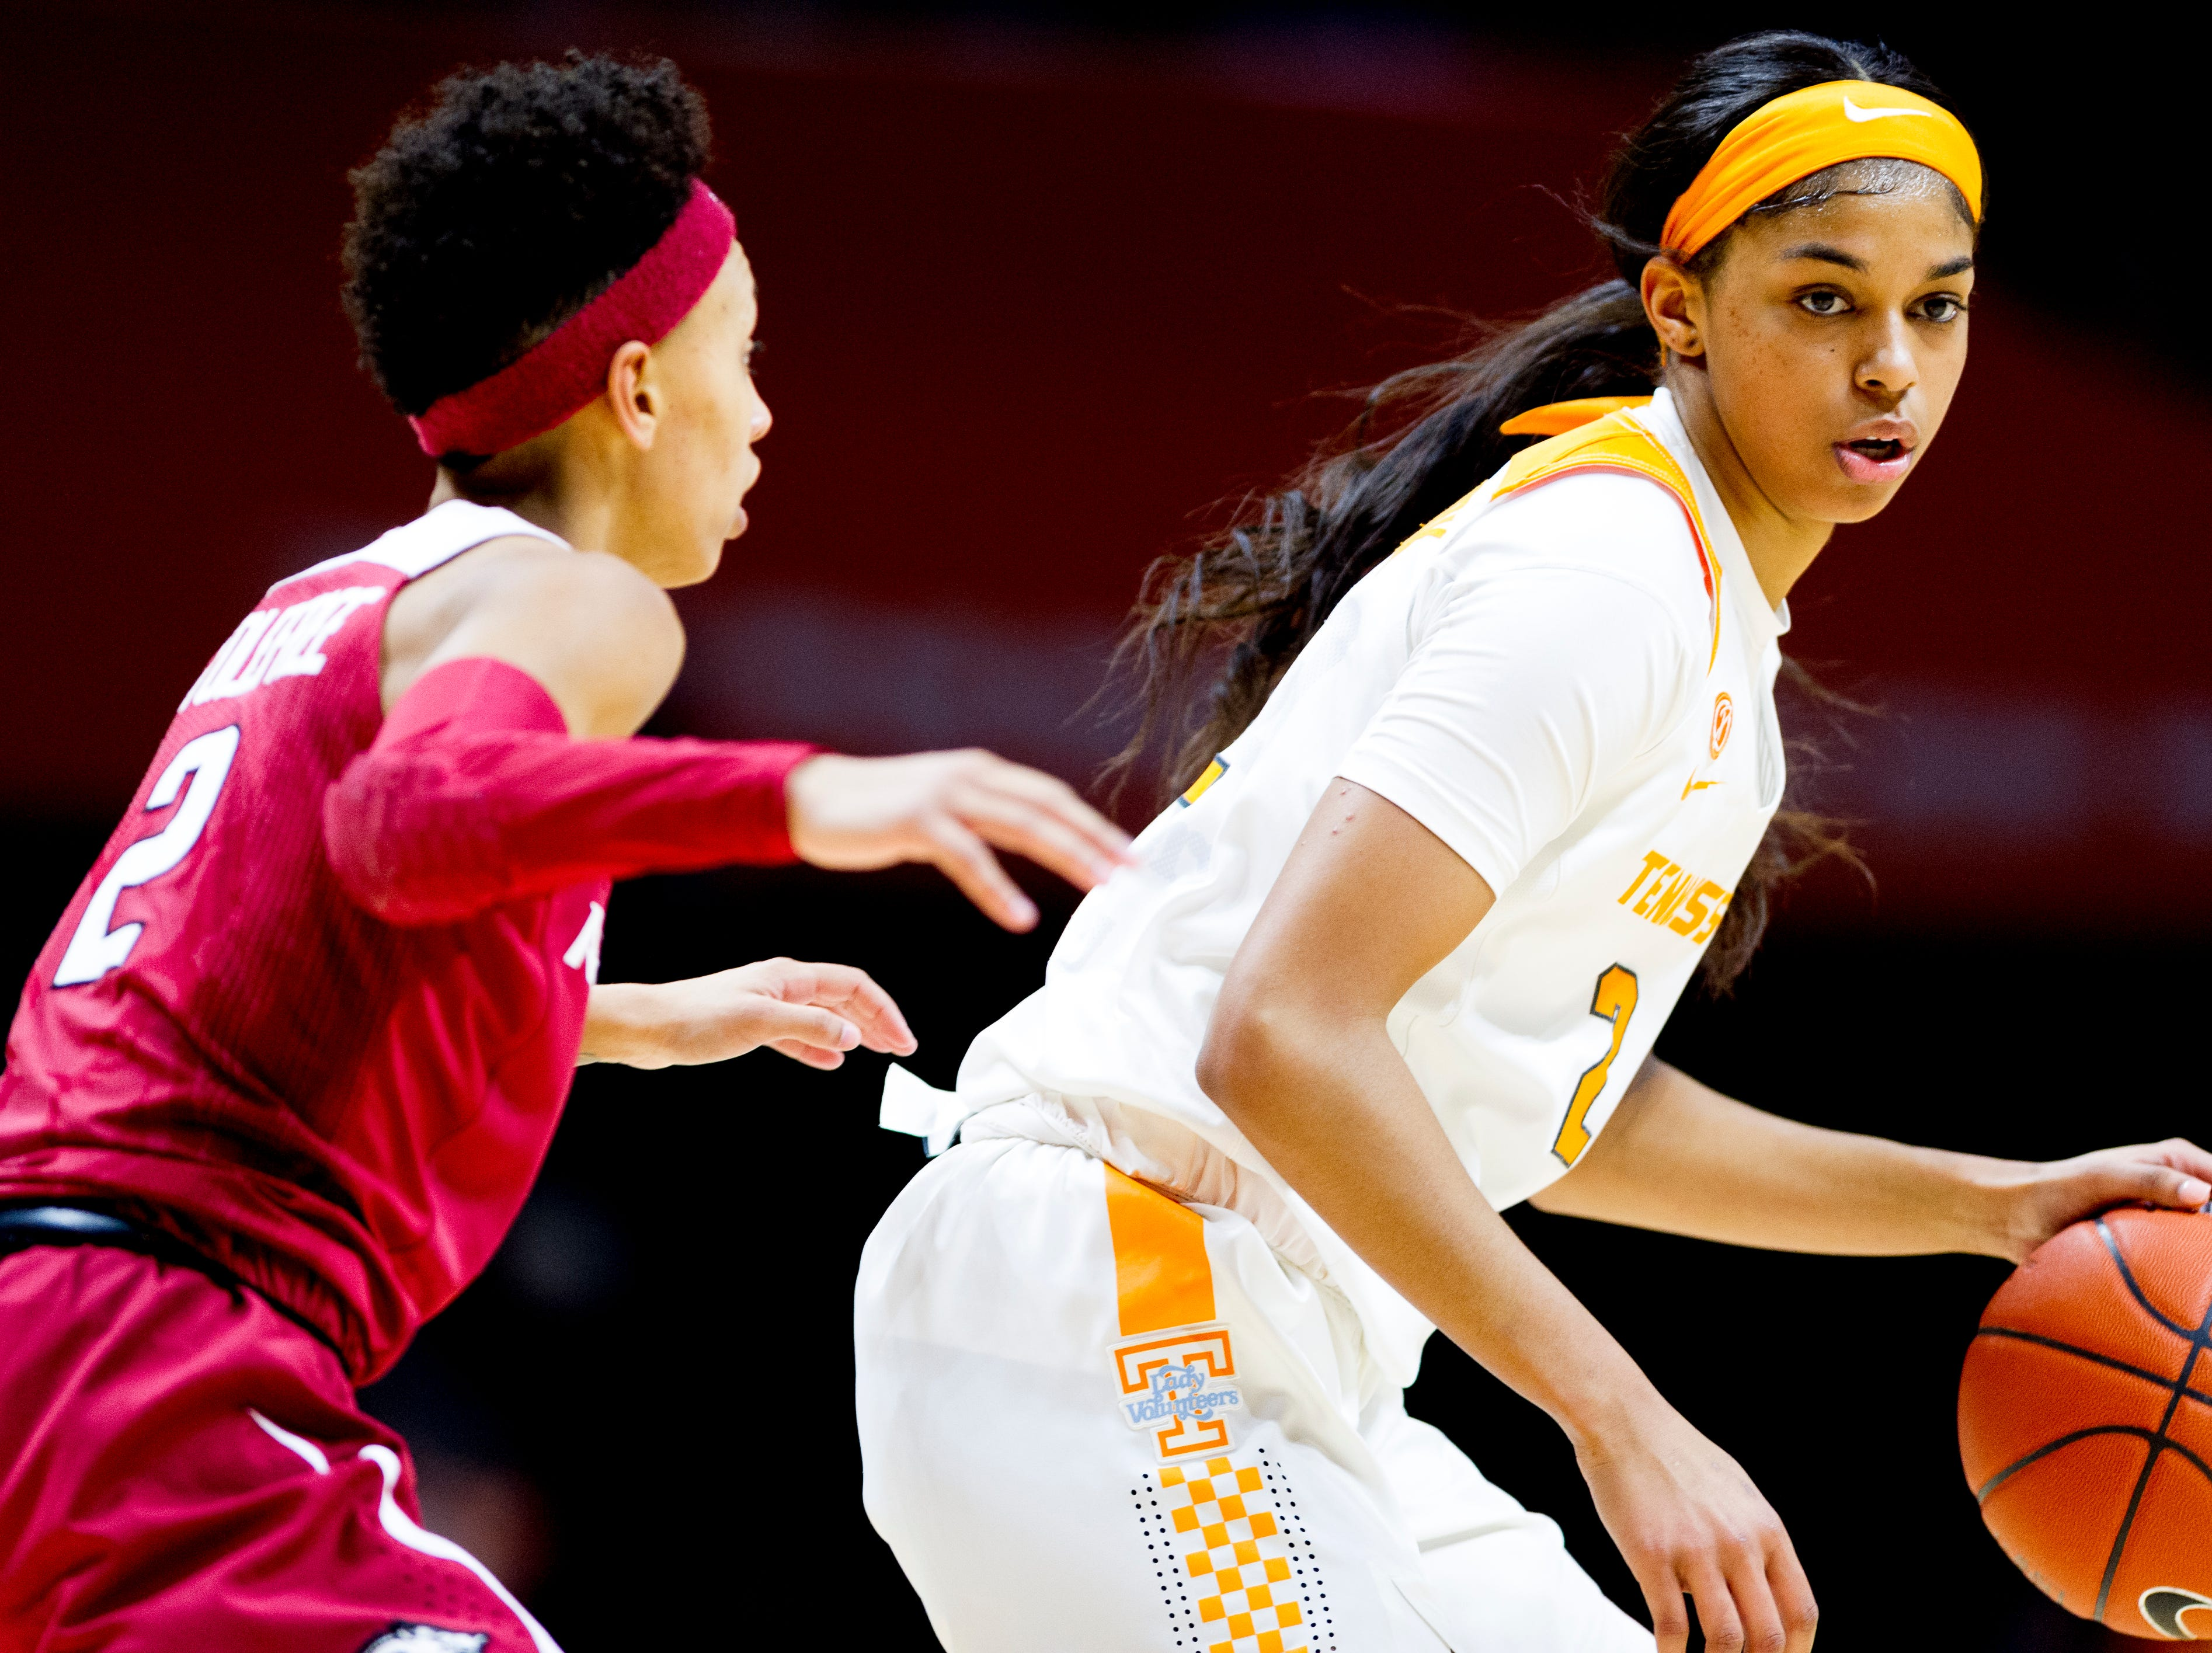 Tennessee guard Evina Westbrook (2) looks to dribble down the court as Arkansas guard Alexis Tolefree (2) defends during a game between Tennessee and Arkansas at Thompson-Boling Arena in , Tennessee on Monday, January 21, 2019.